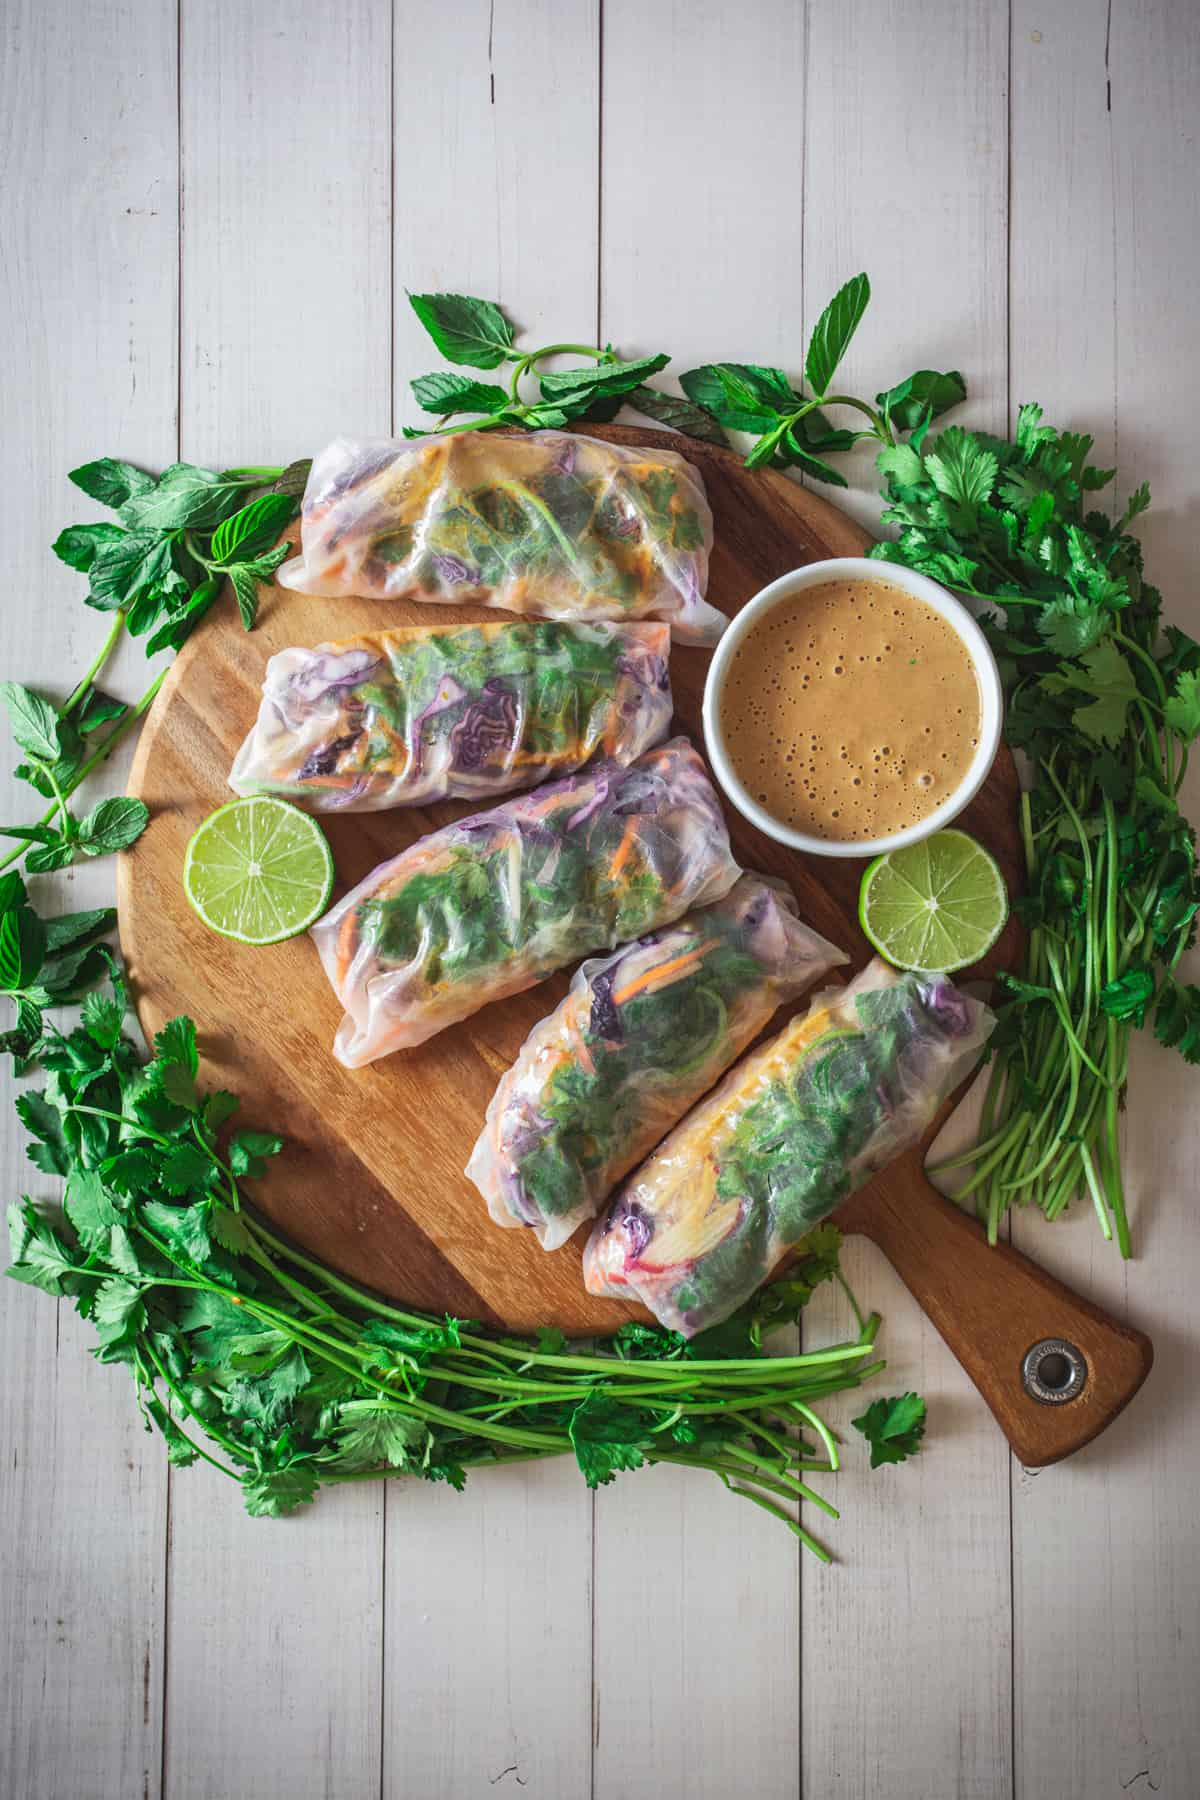 platter of spring rolls with herbs